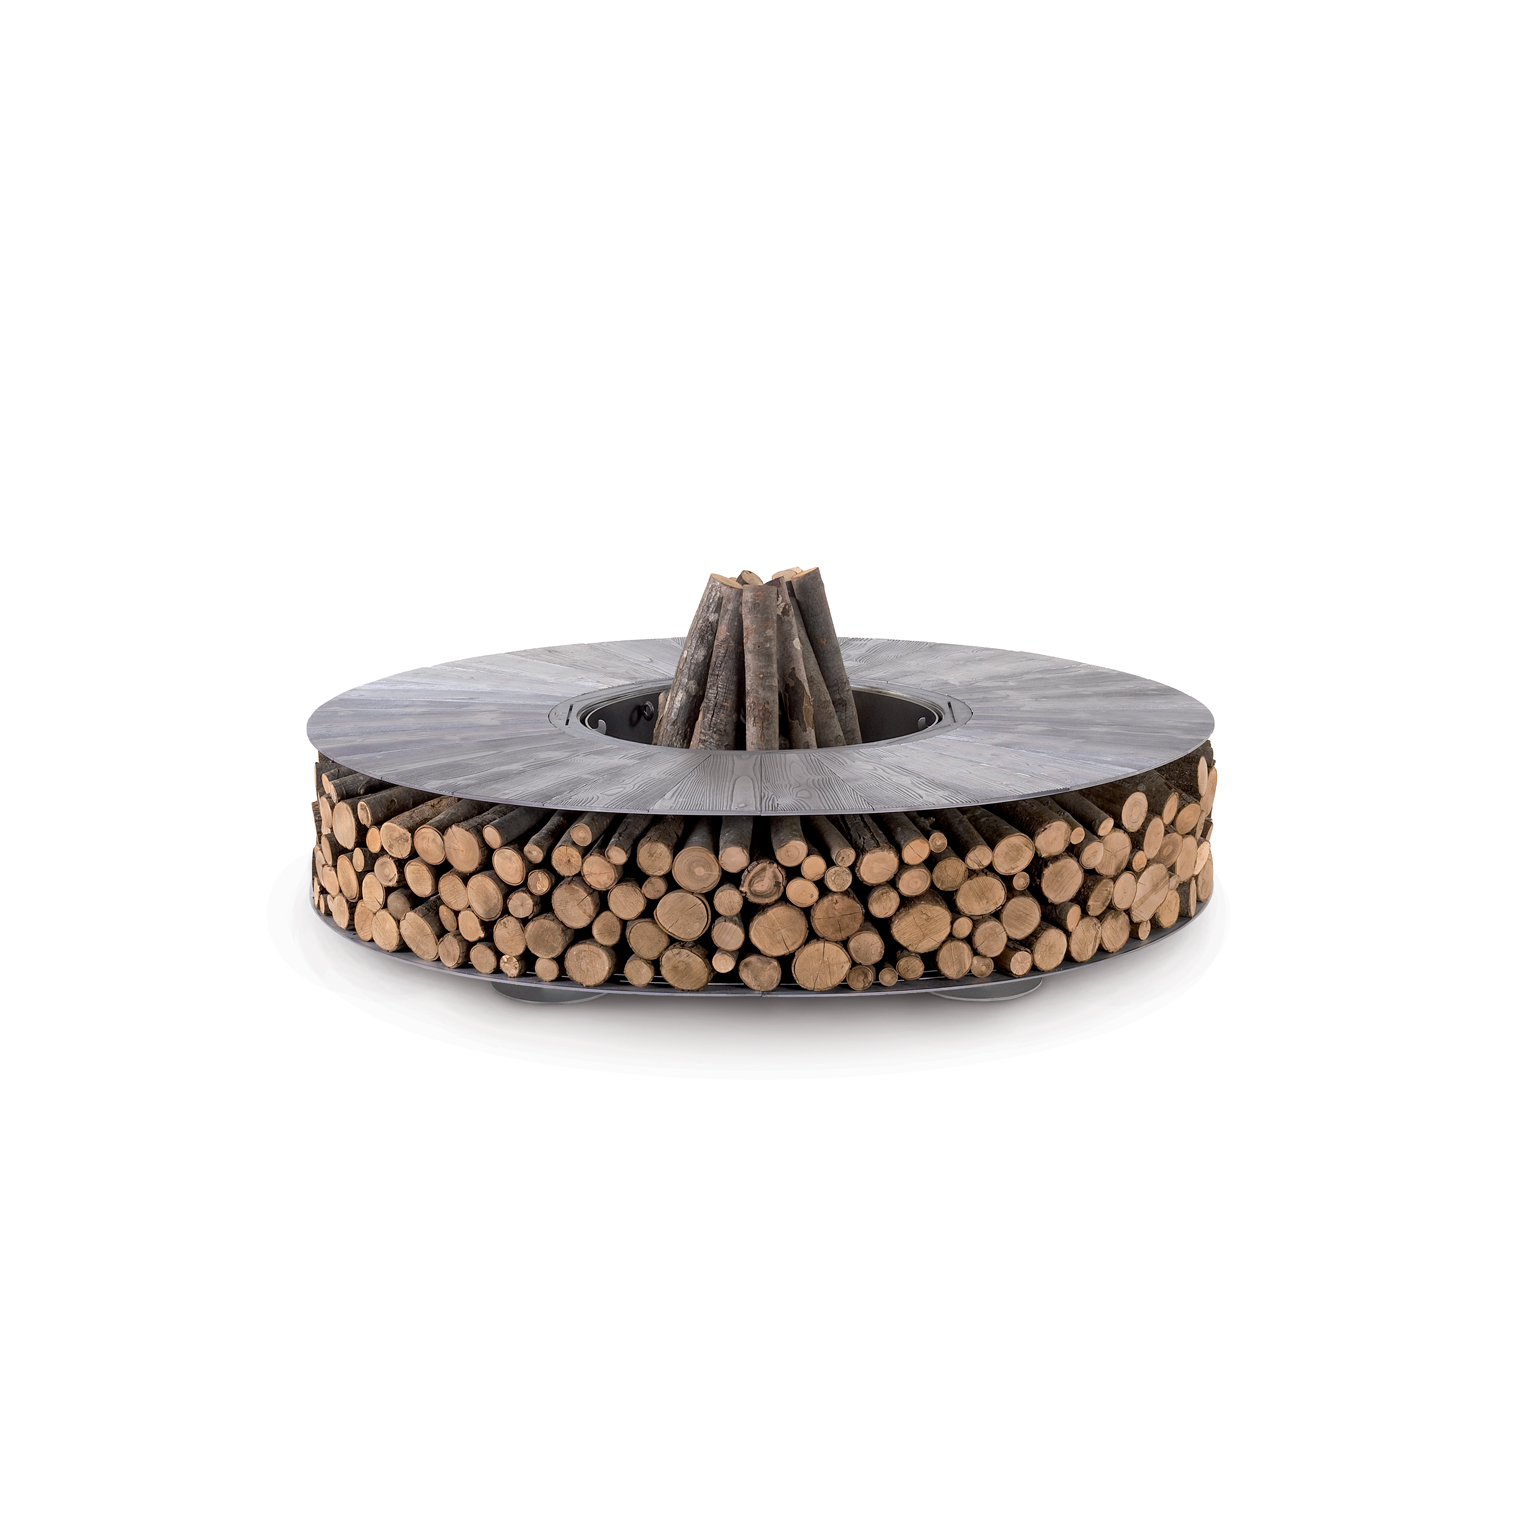 Camino Da Giardino Design Outdoor Design Fire Pits Ak47 Design